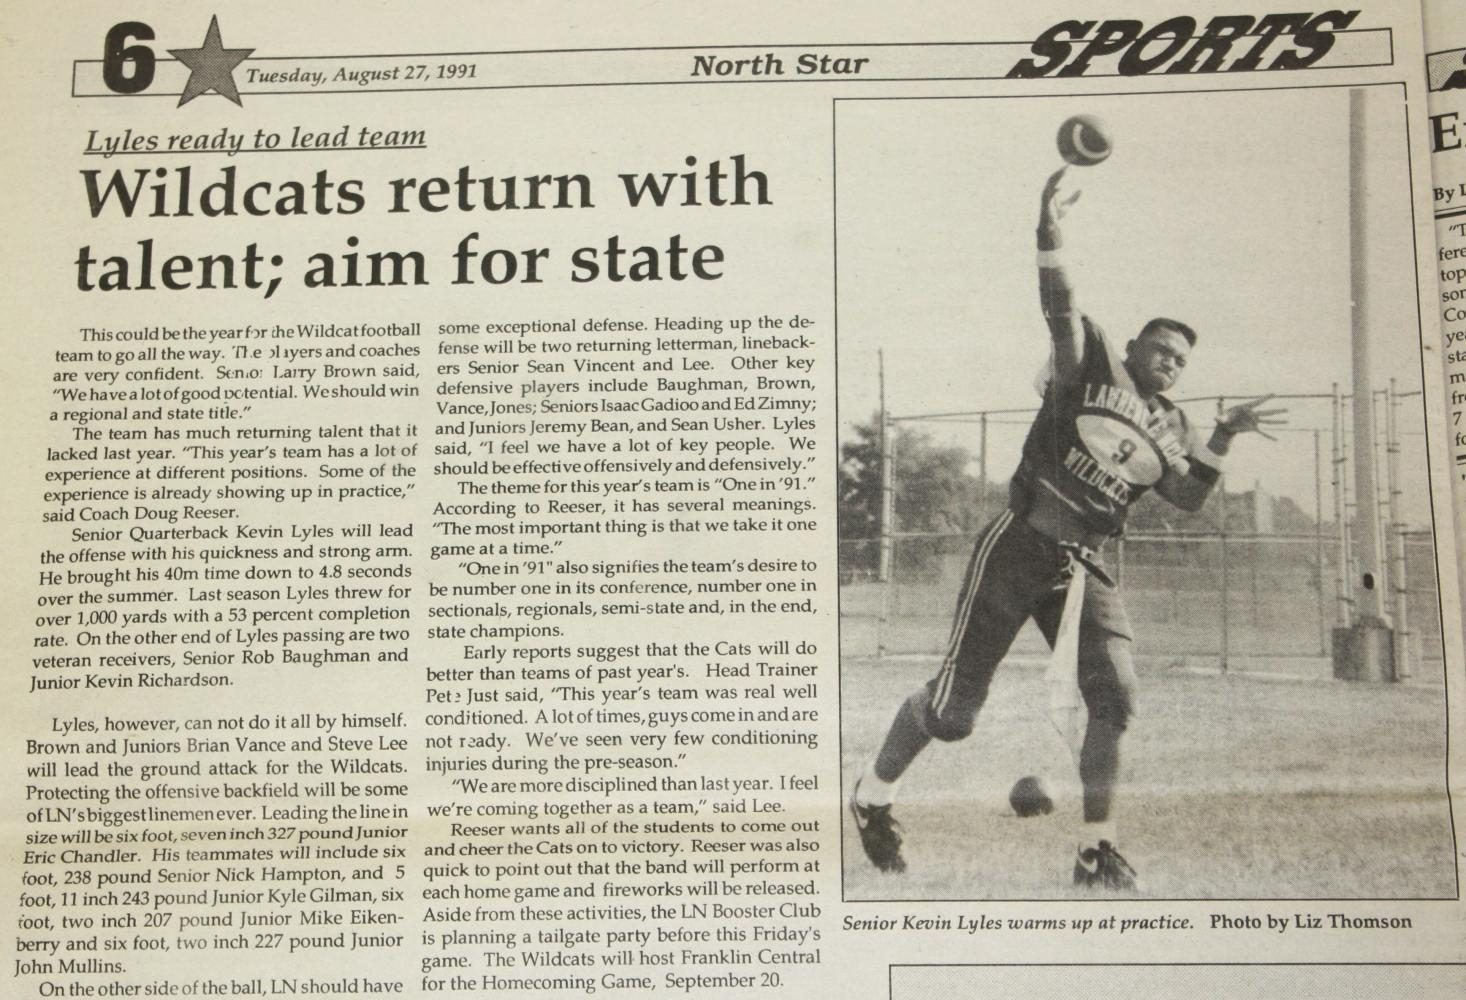 North Star Time Capsule: 1991 football team opens season with talent; aim for state